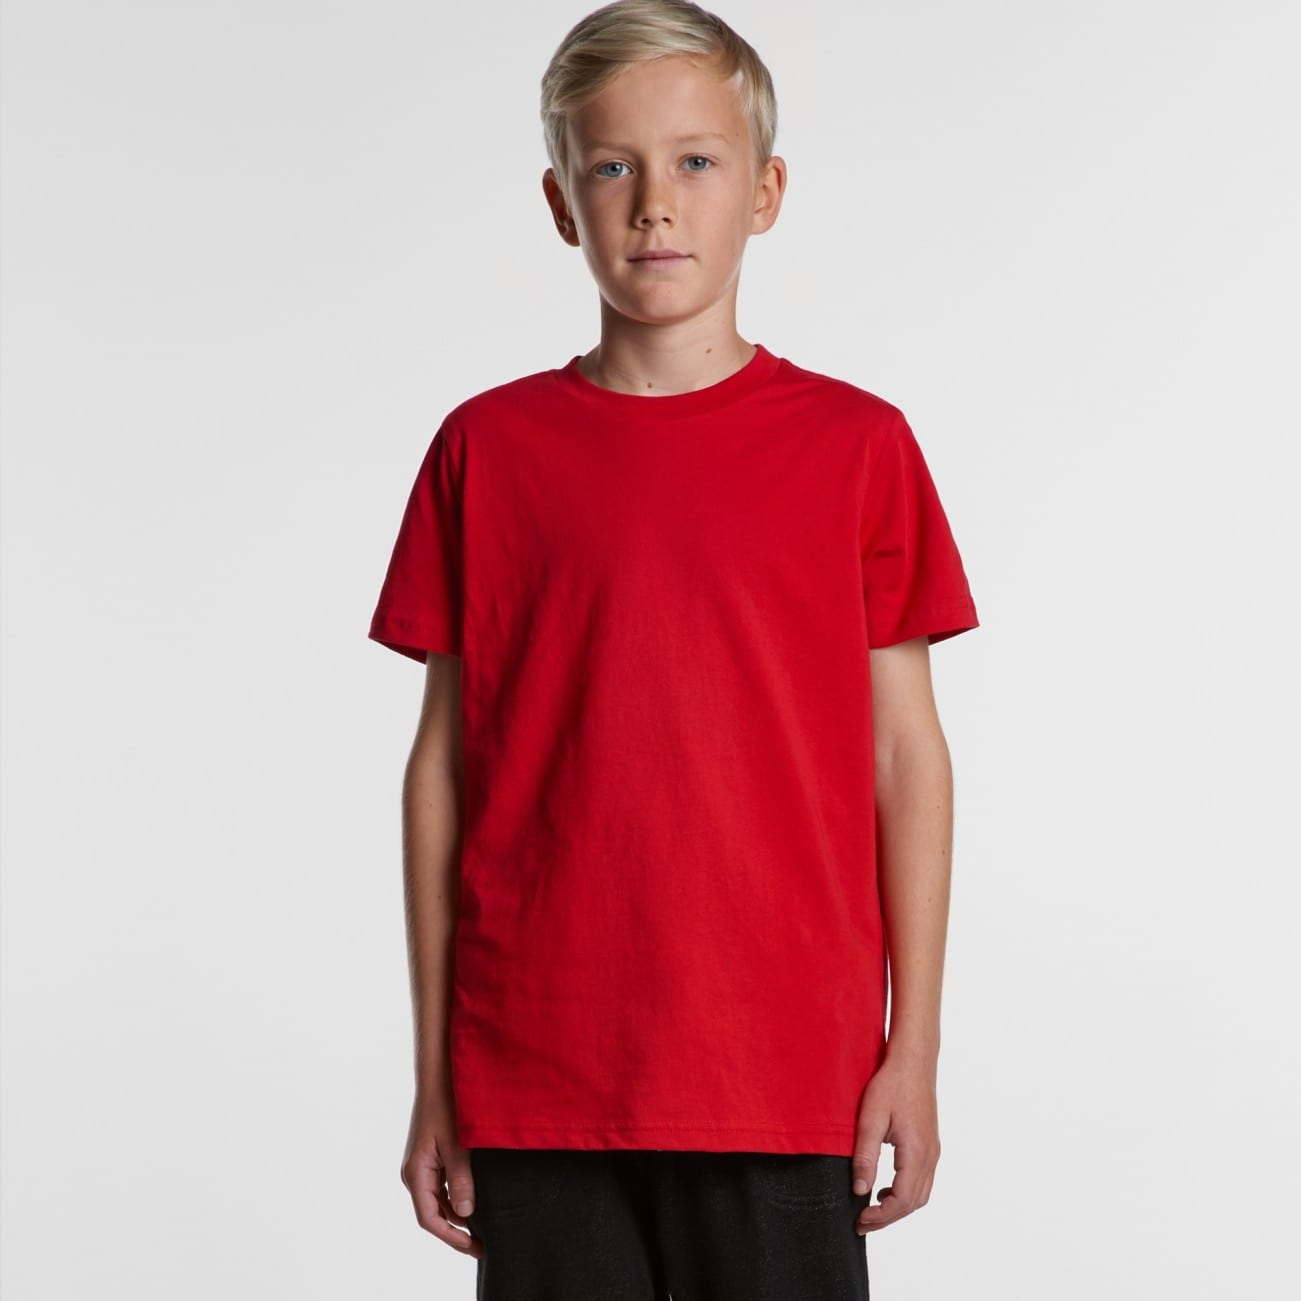 AS 3006 Youth Tee